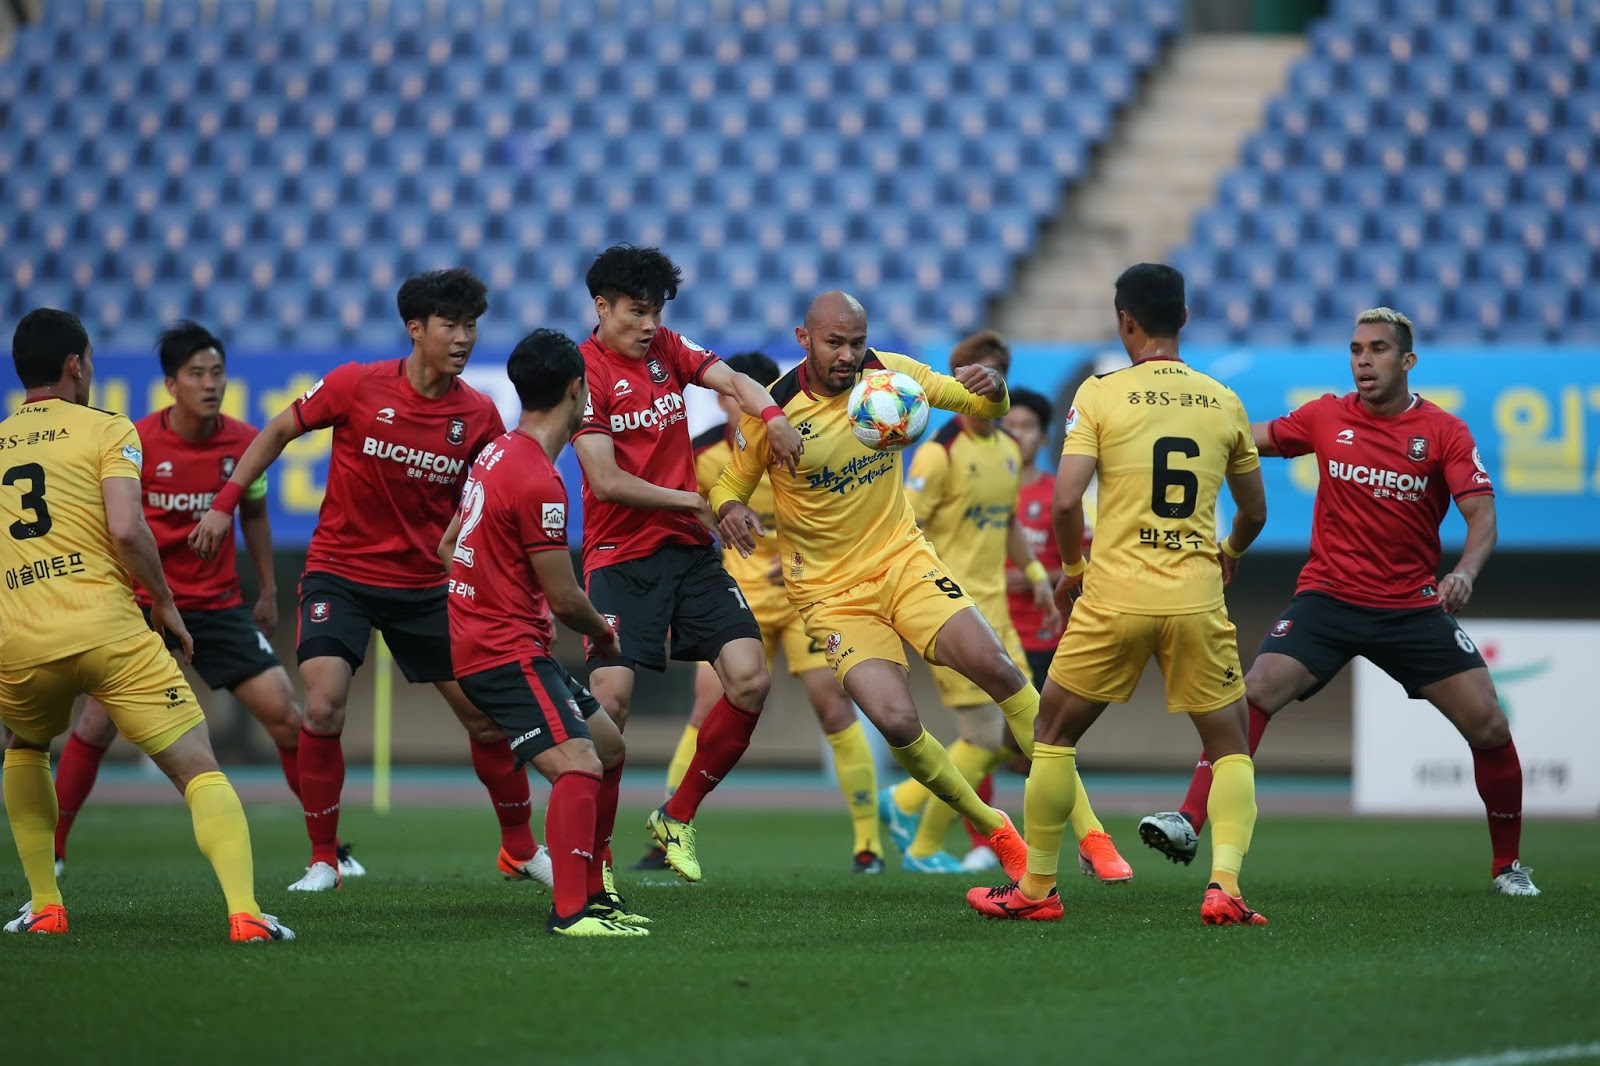 K League 2 Preview: Bucheon FC 1995 vs Seoul E-Land